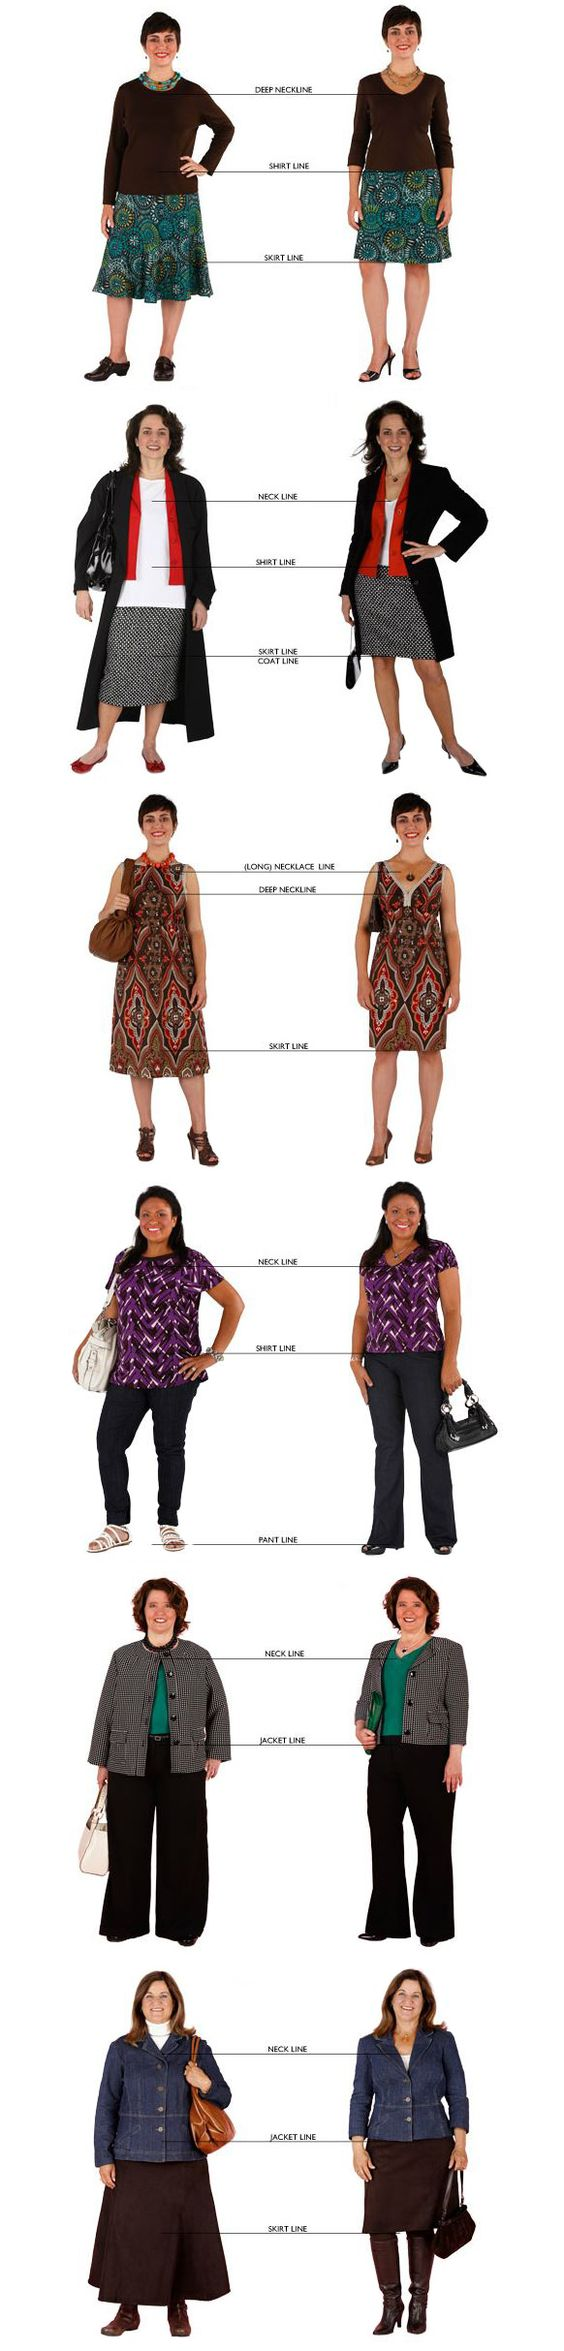 Image of women styling to suit their proportions